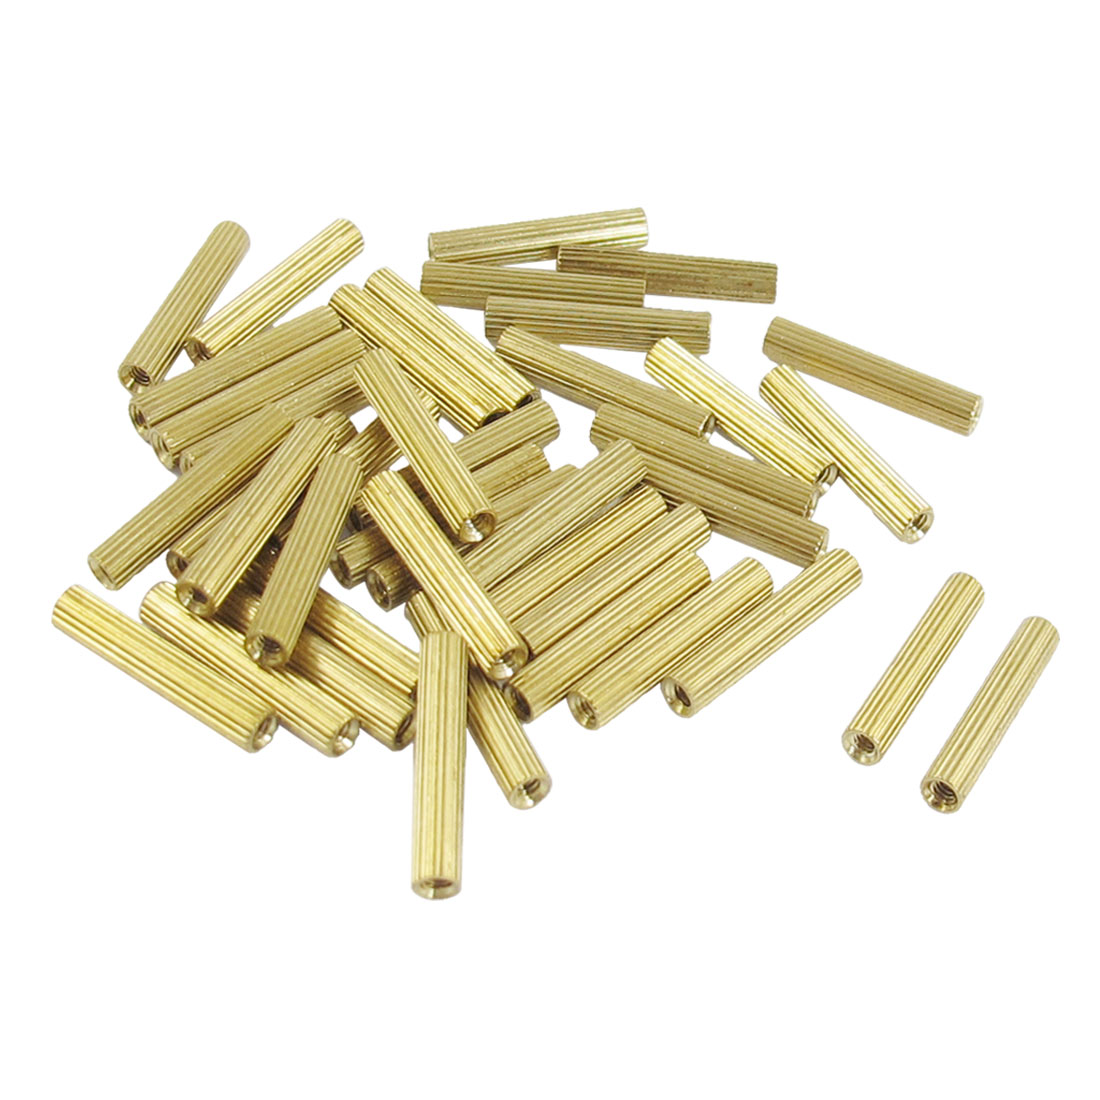 50 Pcs M2 Female Thread Cylindrical Brass Stand-off Support M2x13mm